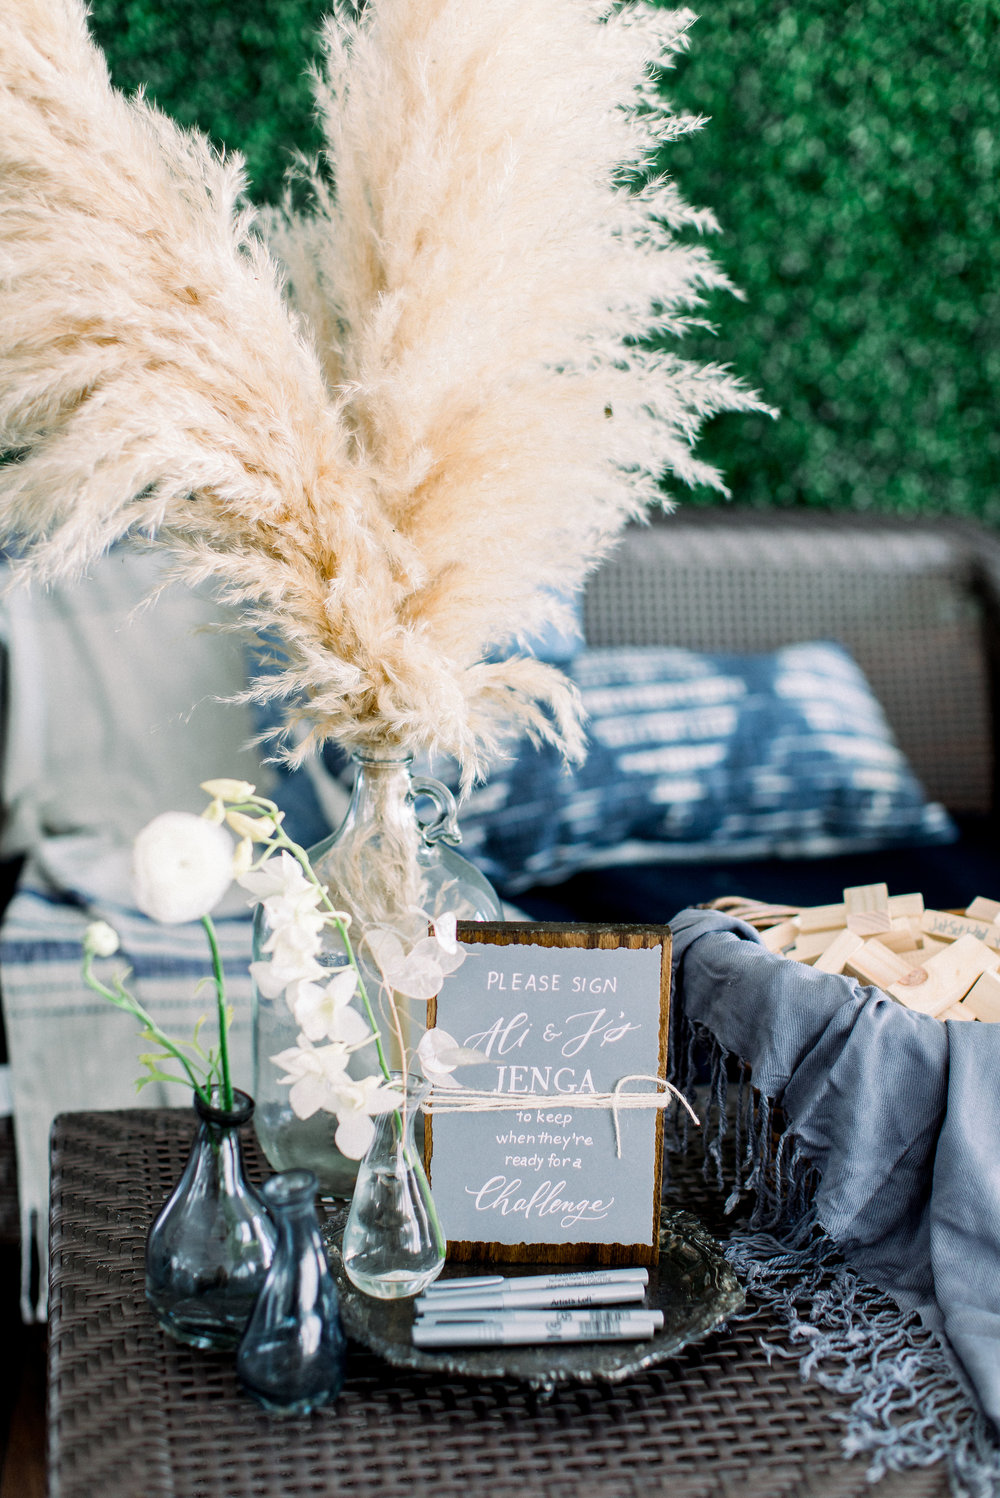 Jet Set Wed :: A Seaside Romance in Every Shade of Blue